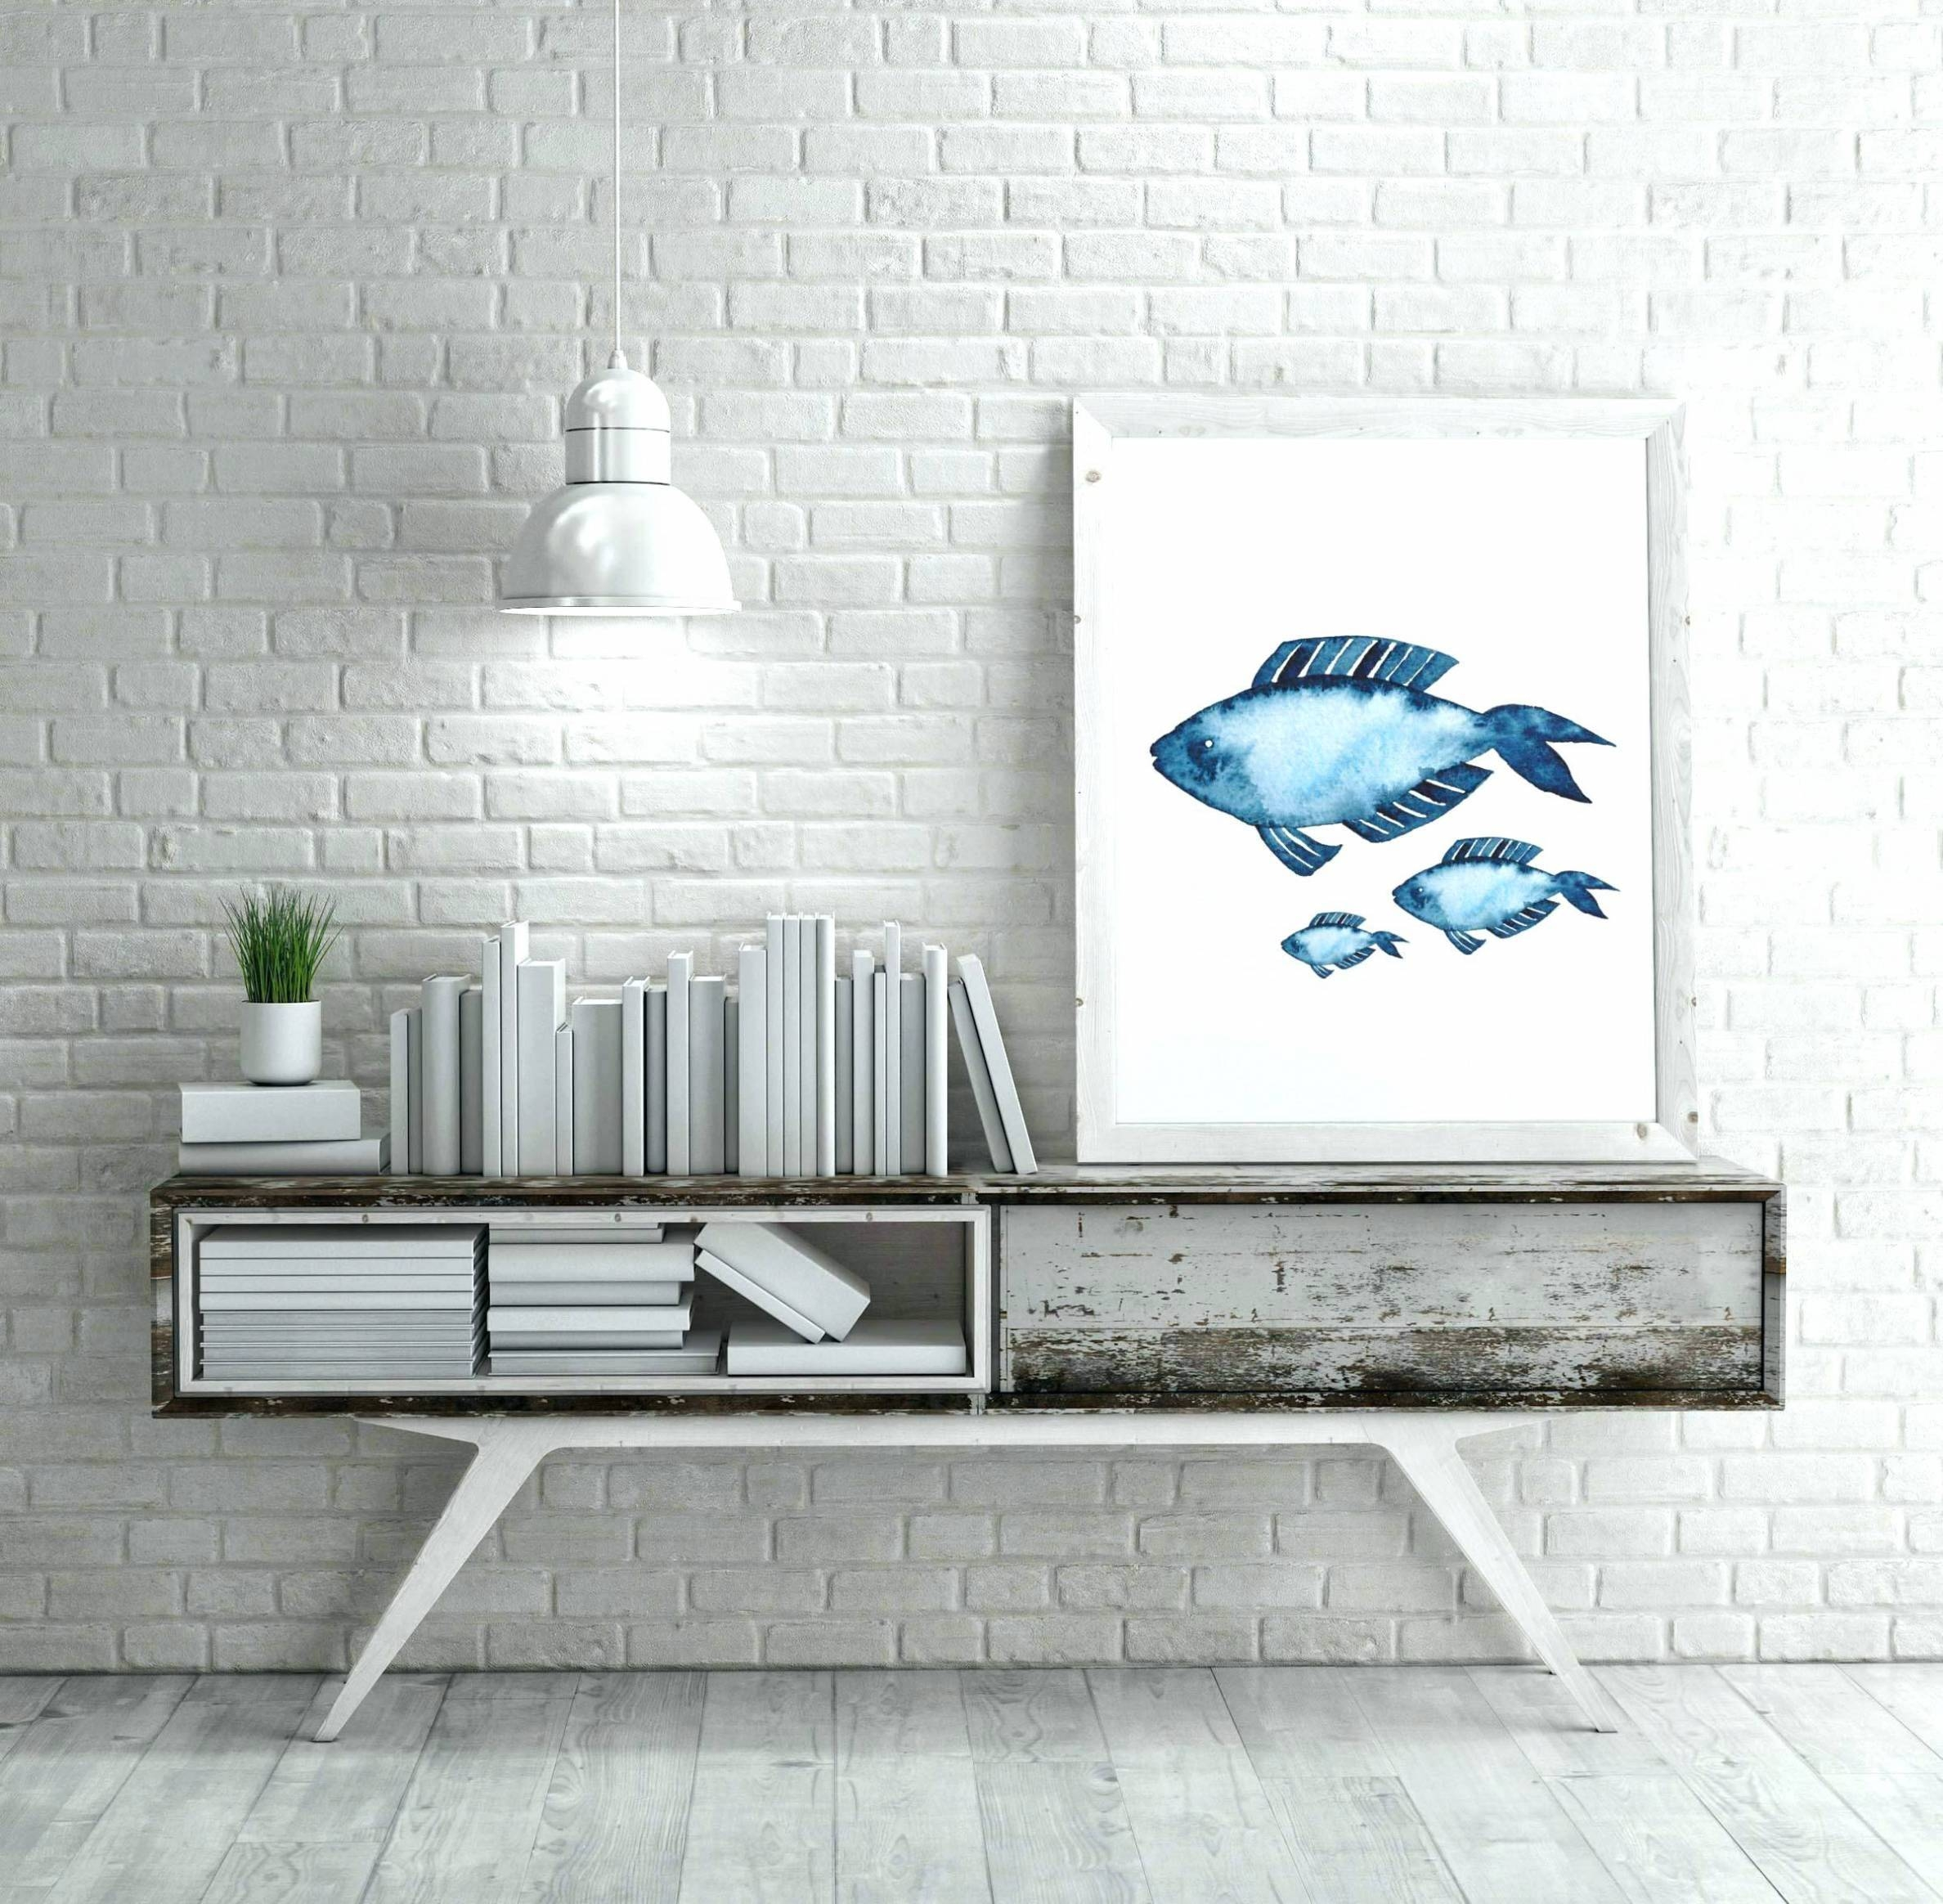 17 Ideas Of Large Coastal Wall Art Pertaining To Most Current Large Coastal Wall Art (View 2 of 20)